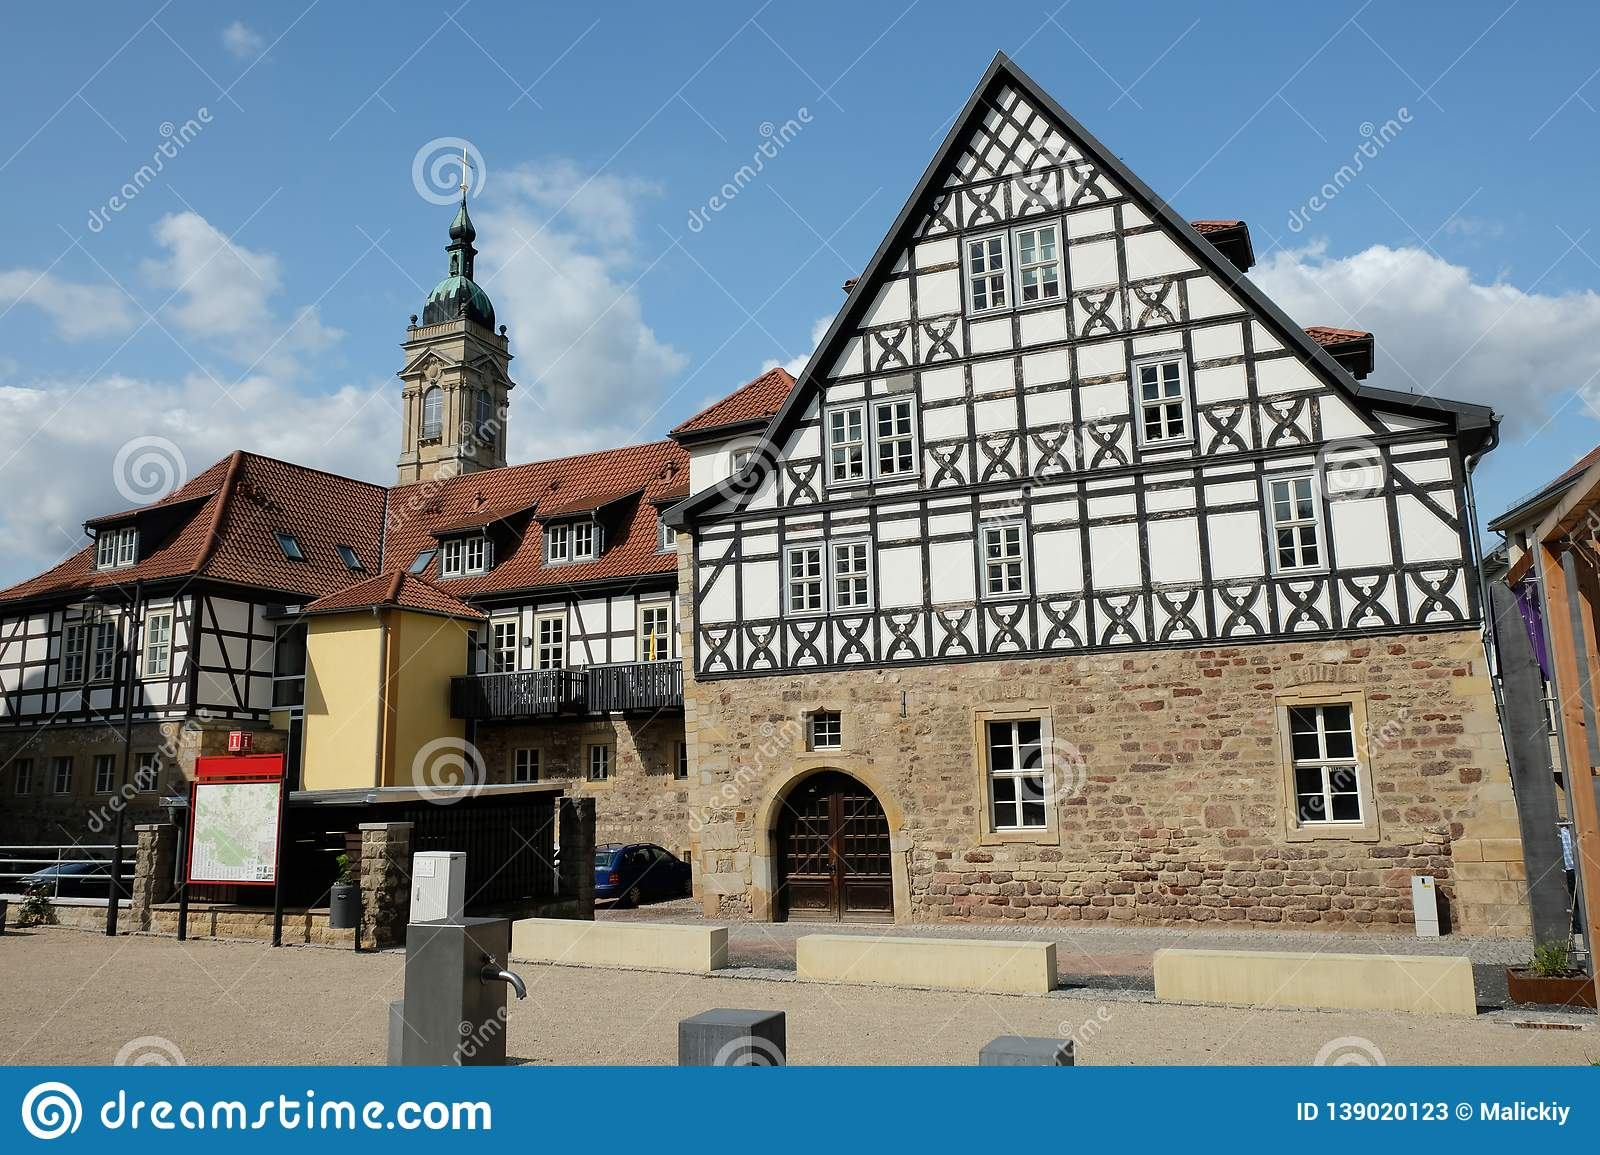 Beautiful sights in the city. Travel Europe. Frankfurt Germany old building